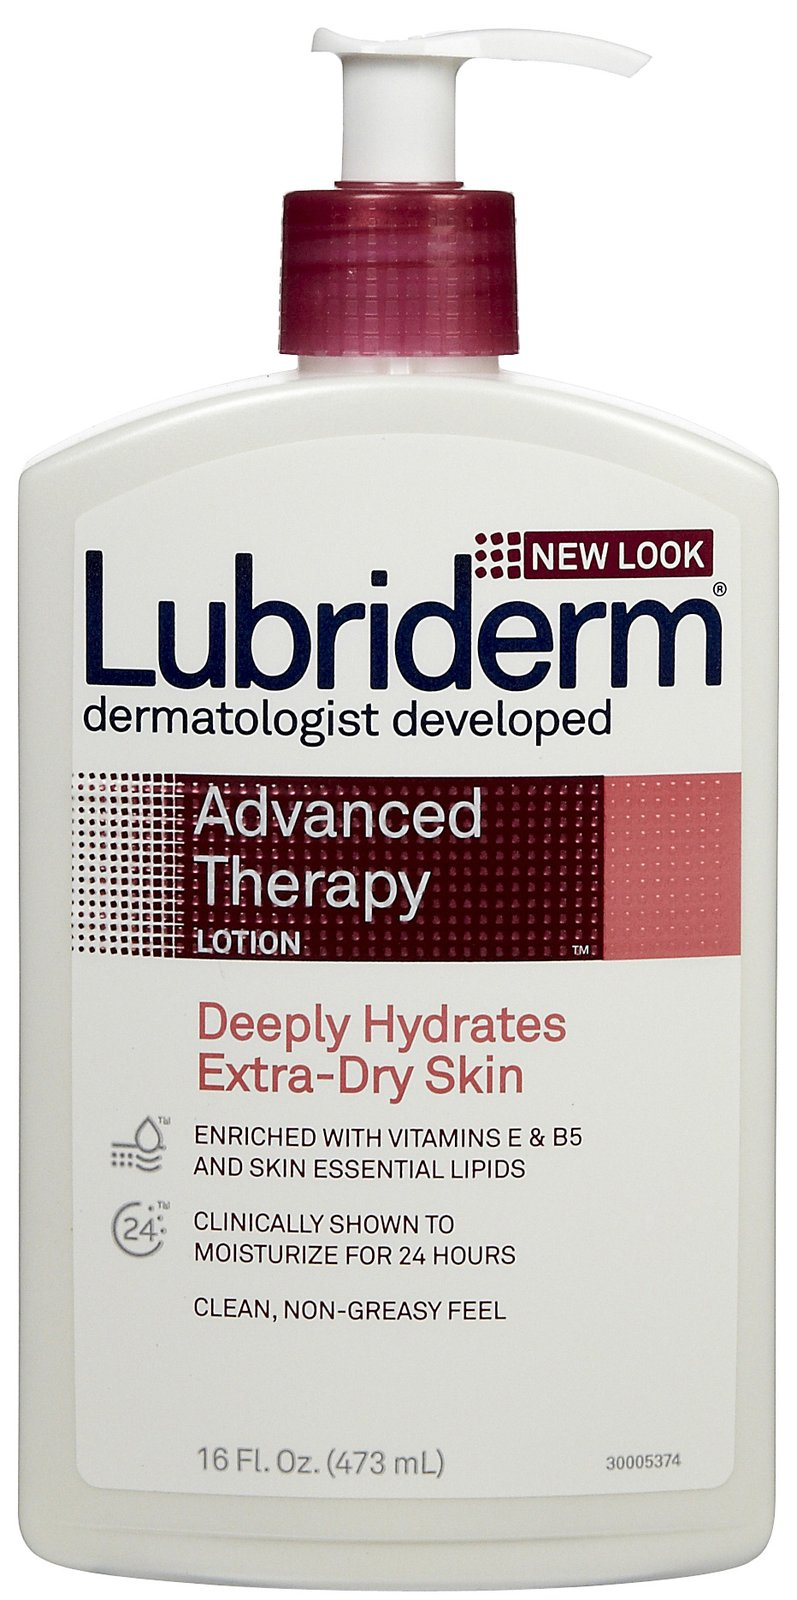 If you need to be moisturized now, then reach for Lubriderm Advanced Therapy Lotion ($8), which is stacked with vitamins E and B5, so you can expect smooth skin in 24 hours.